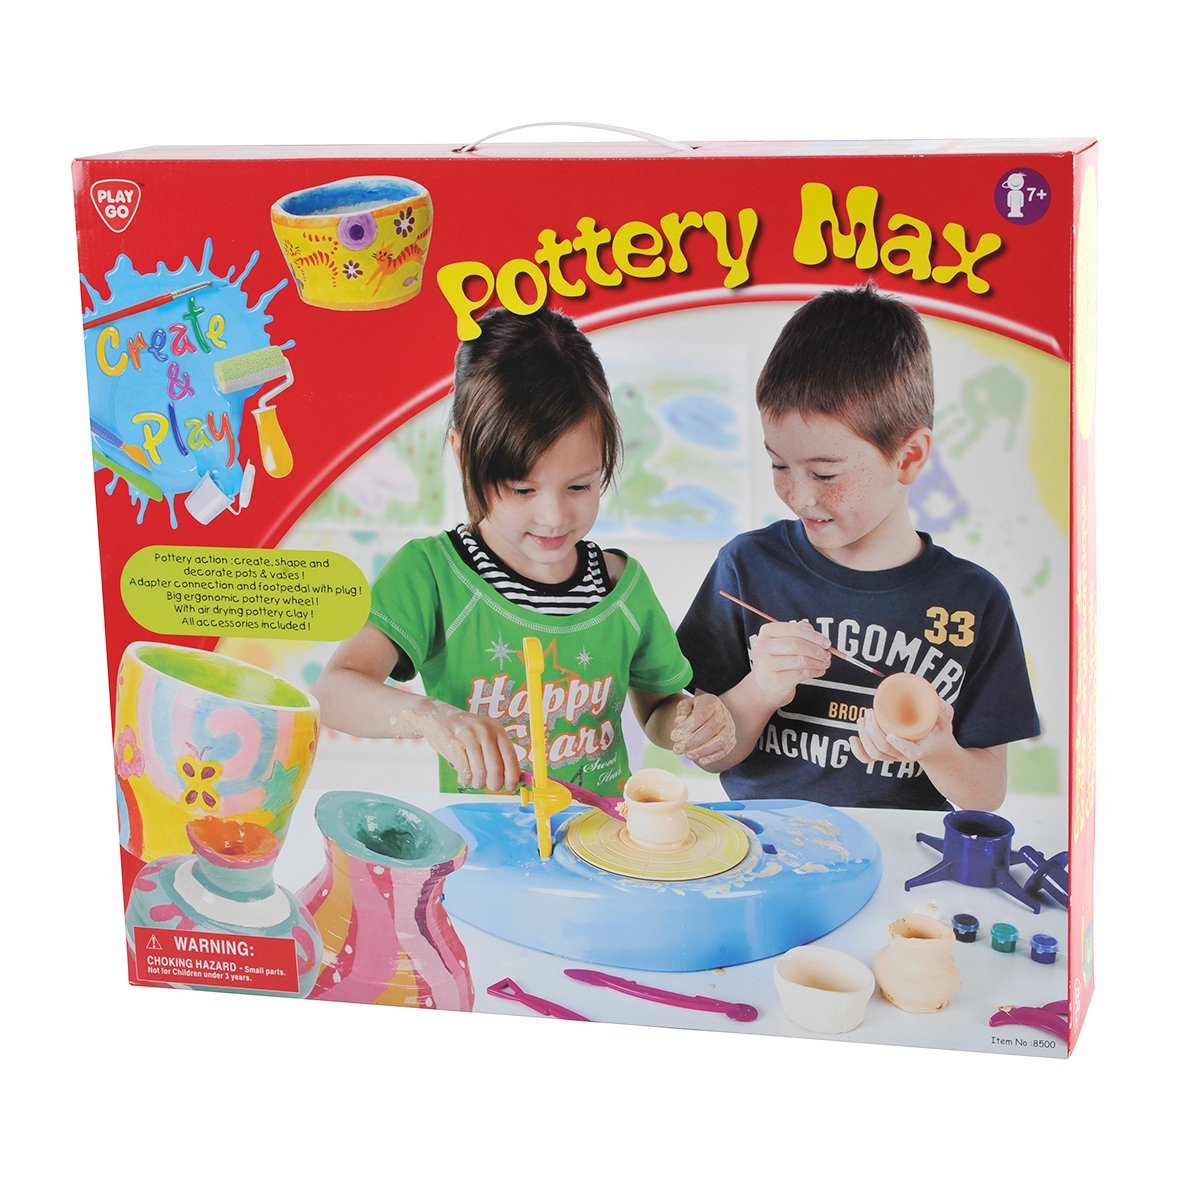 Totally Me! Deluxe Pottery Wheel